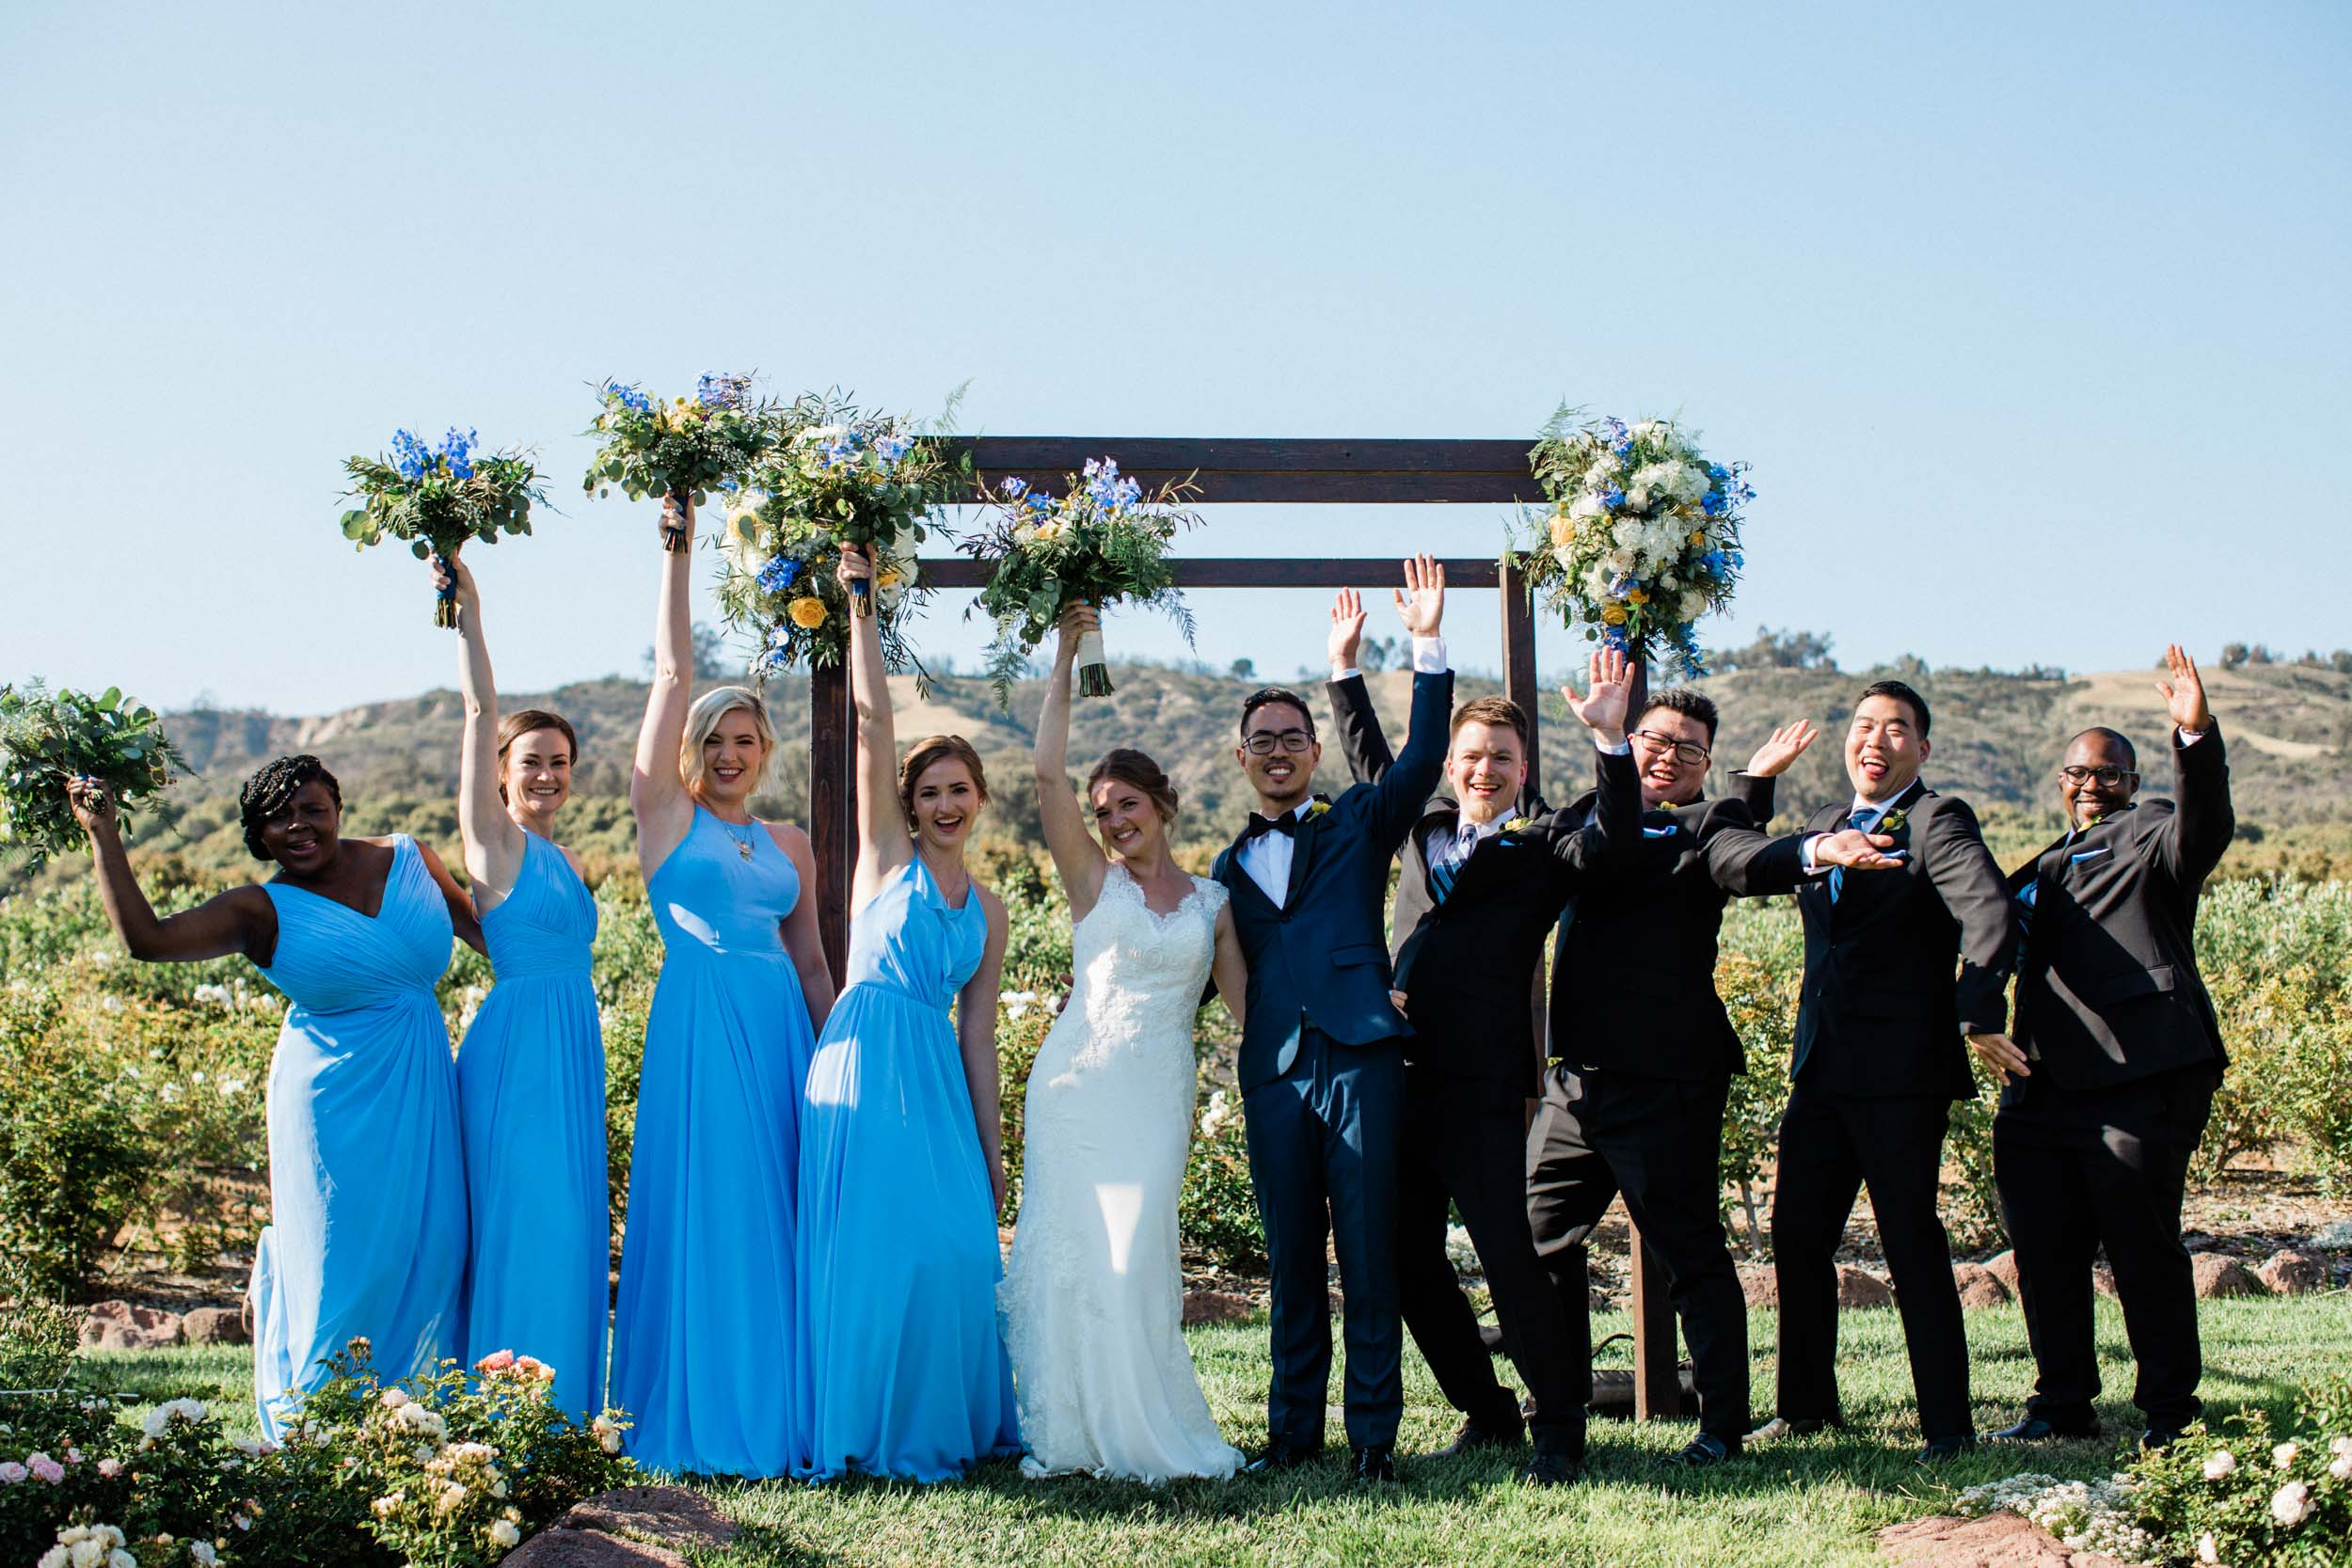 BKM-Photography-Gerry-Ranch-Southern-California-Wedding-0064.jpg